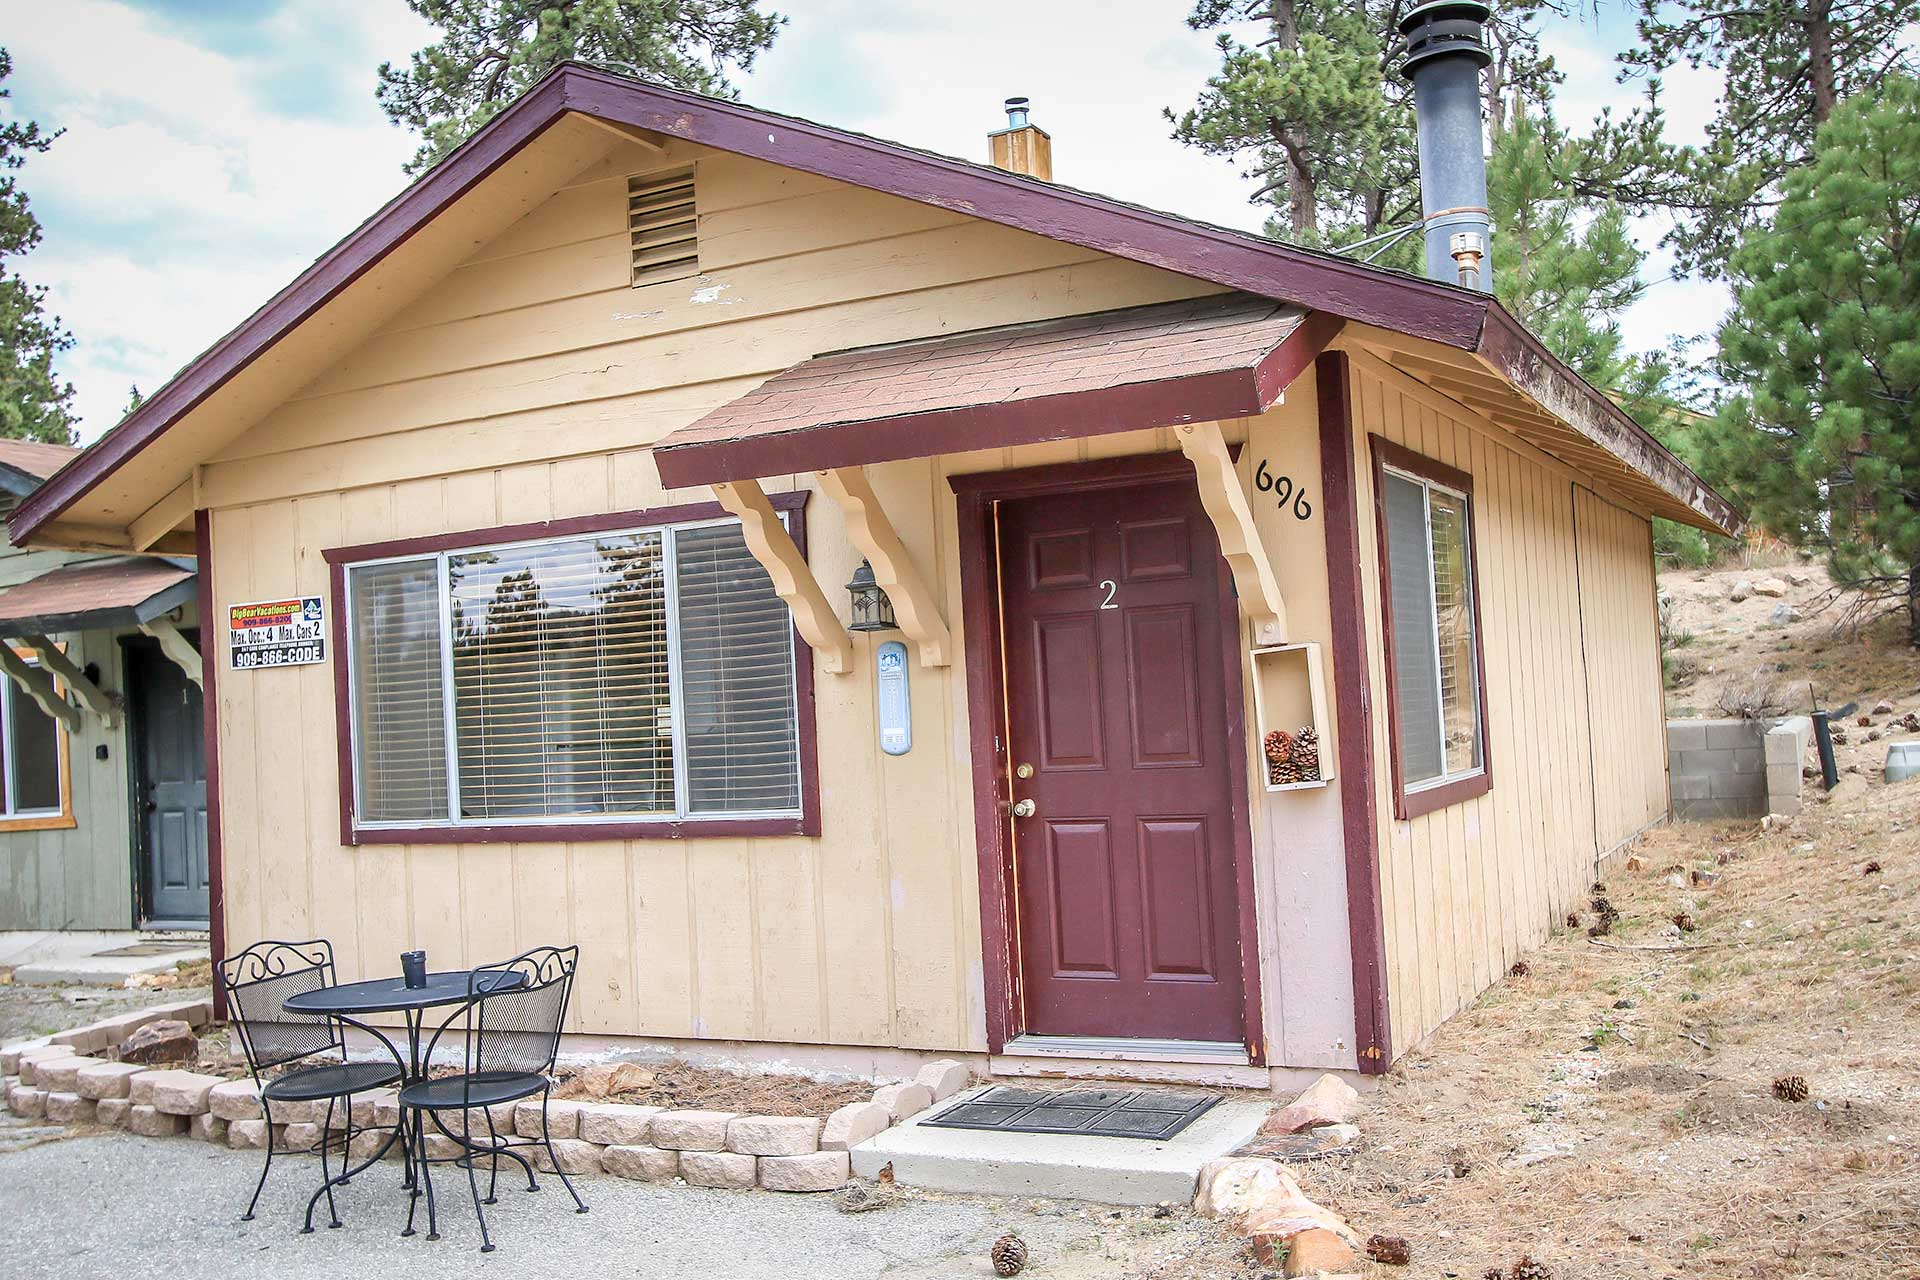 1260 lazy daisy bear ra45977 redawning for Big bear lakefront cabin rentals